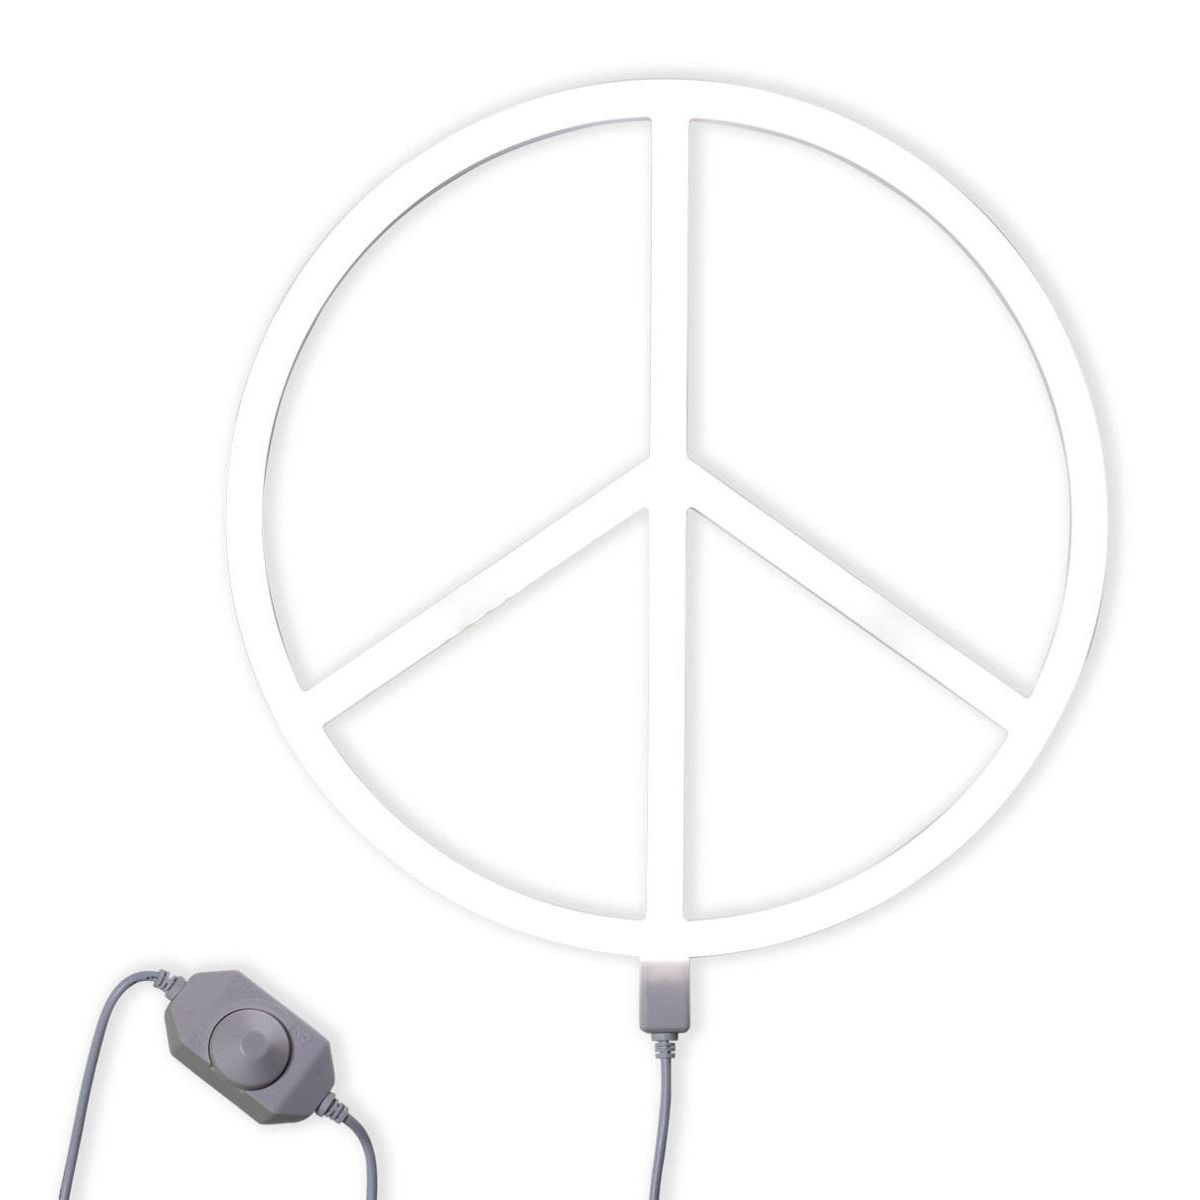 Nepewh Lr 3 Neon Style Light Peace White 3